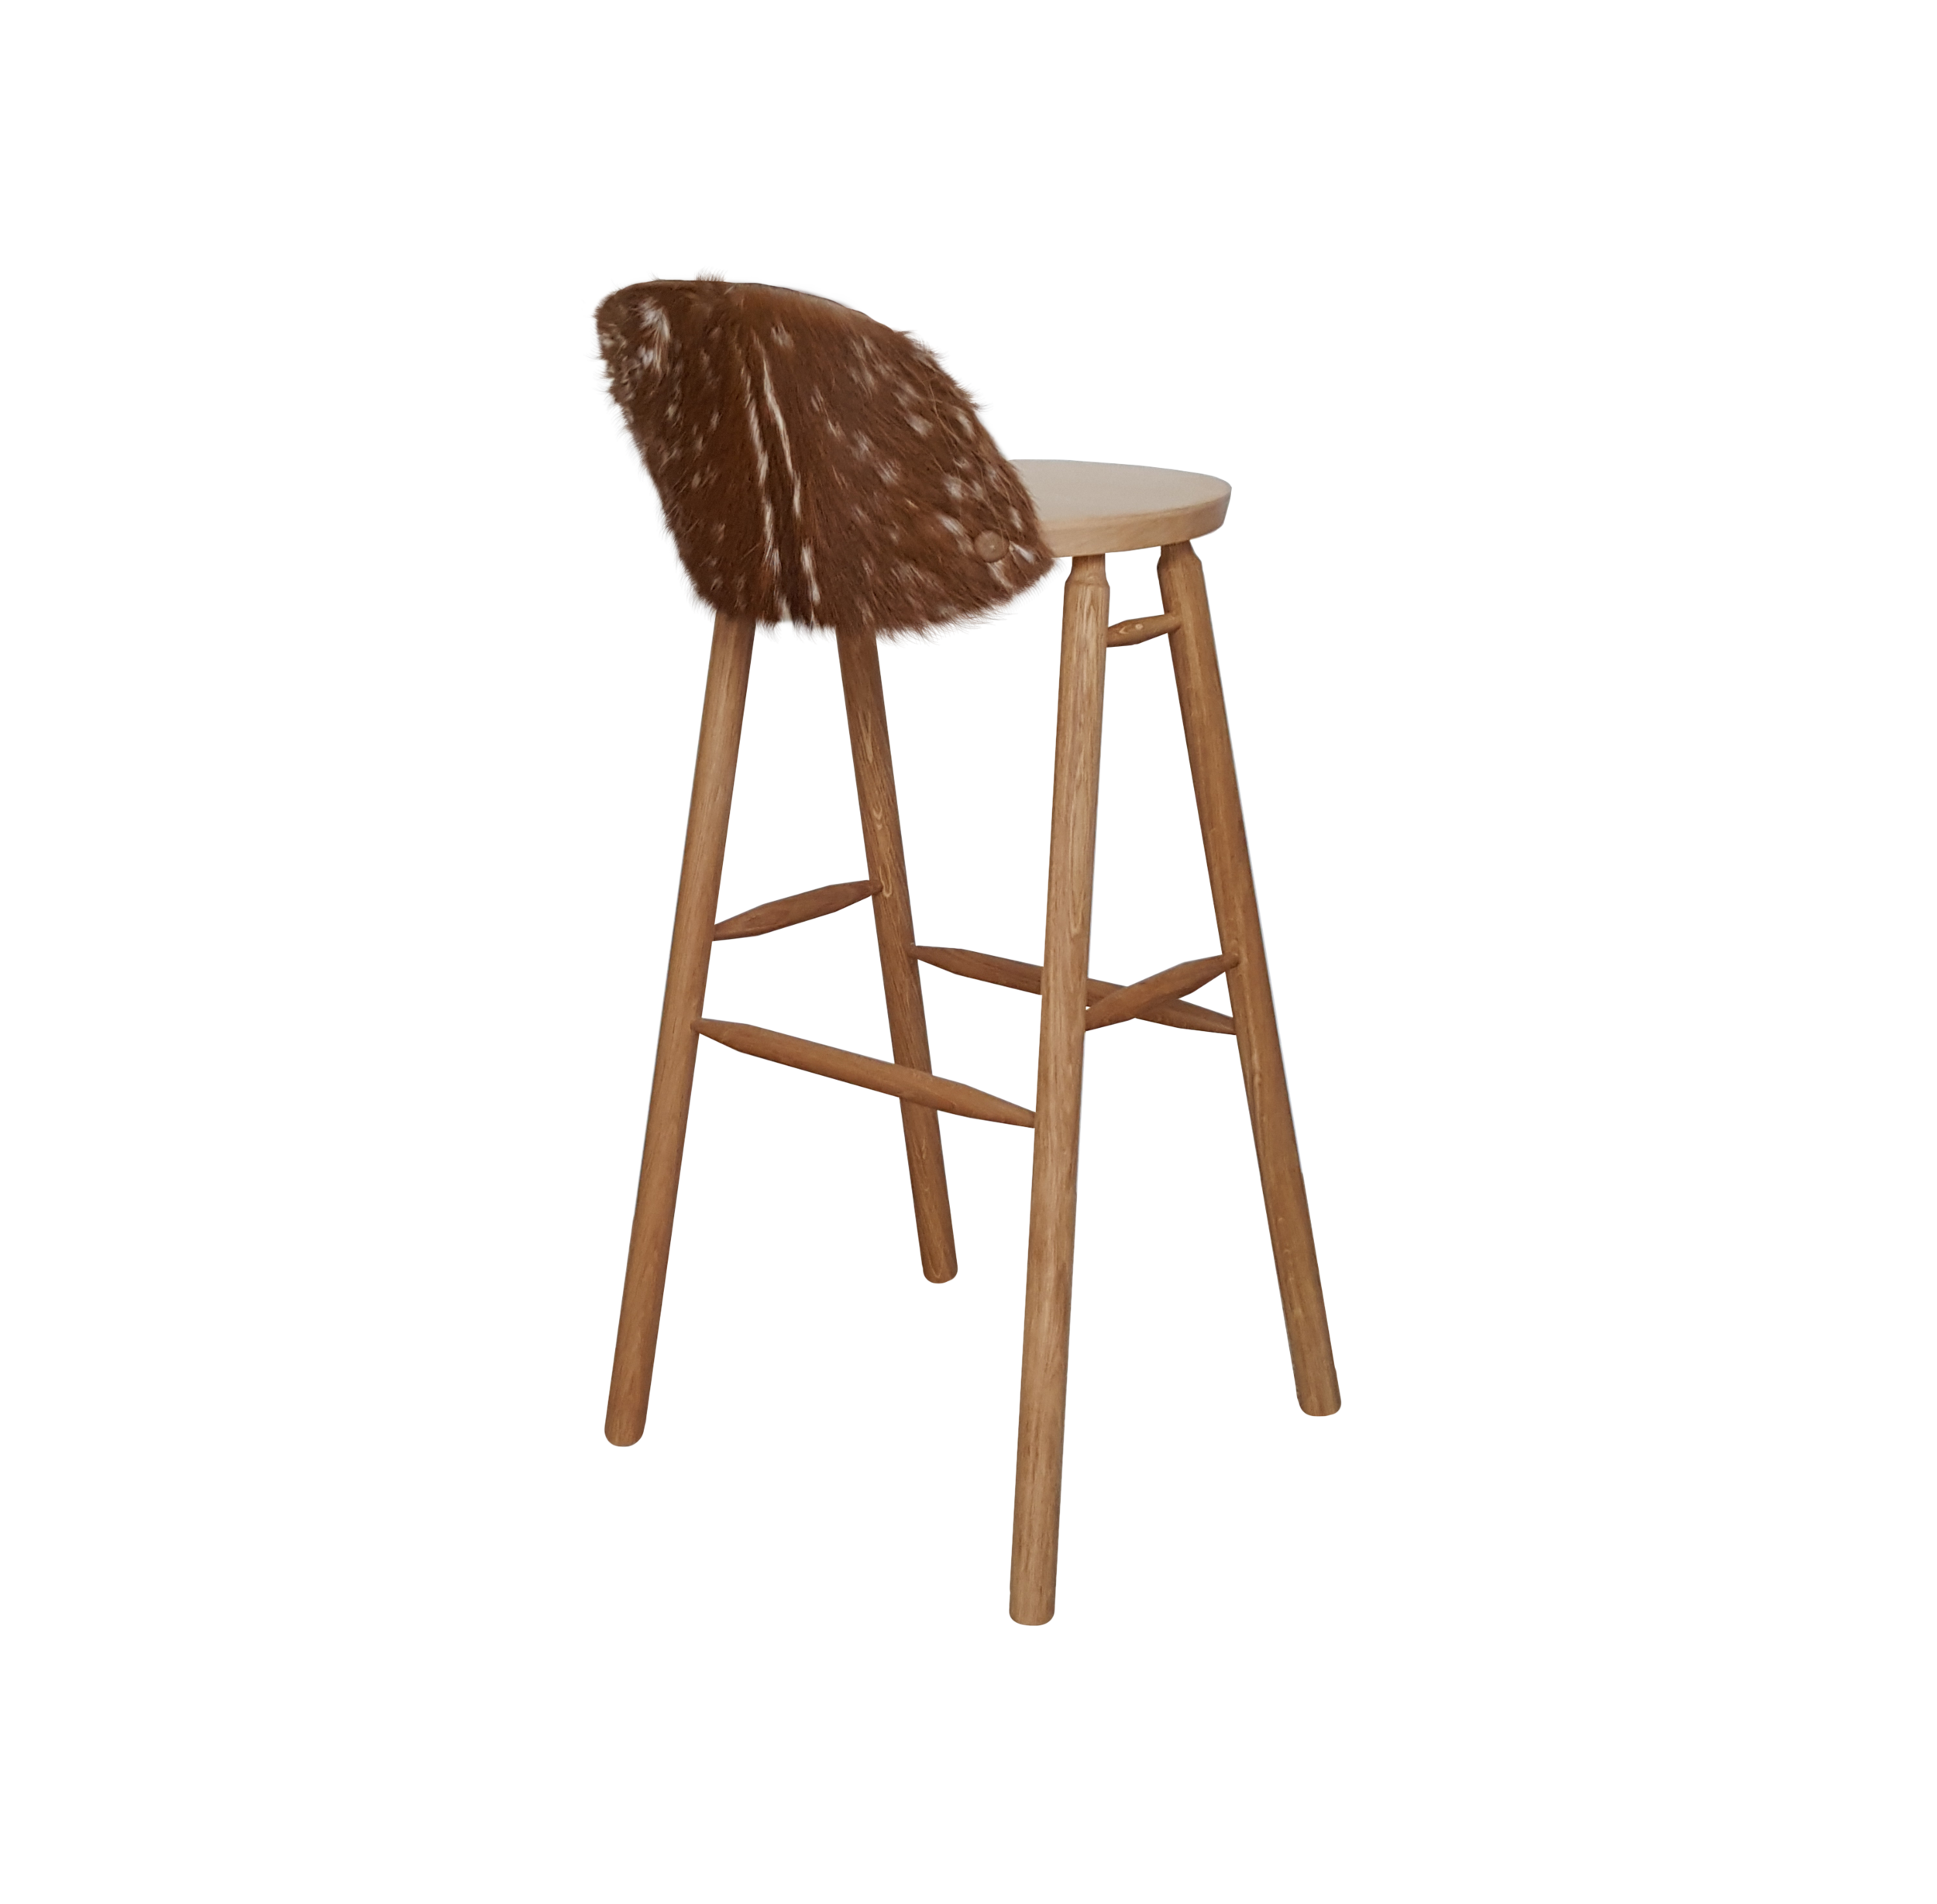 Rear Blond Deer Chair.png